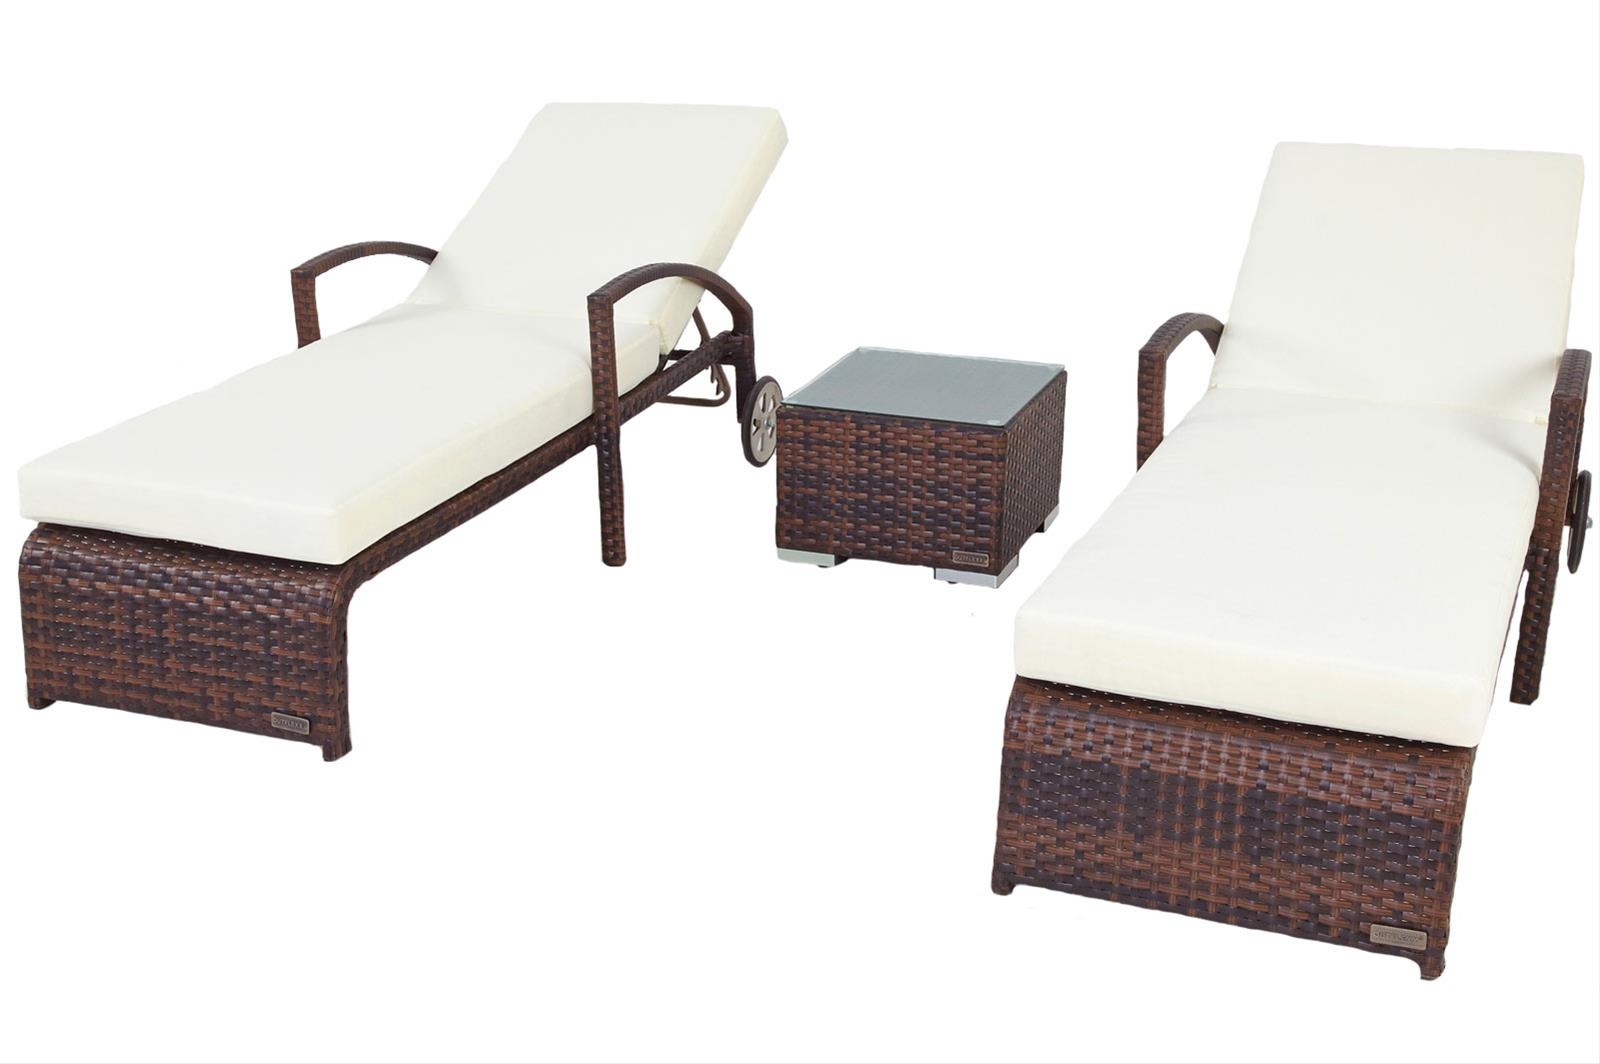 outflexx gartenliege rollliege 2er set polyrattan braun. Black Bedroom Furniture Sets. Home Design Ideas